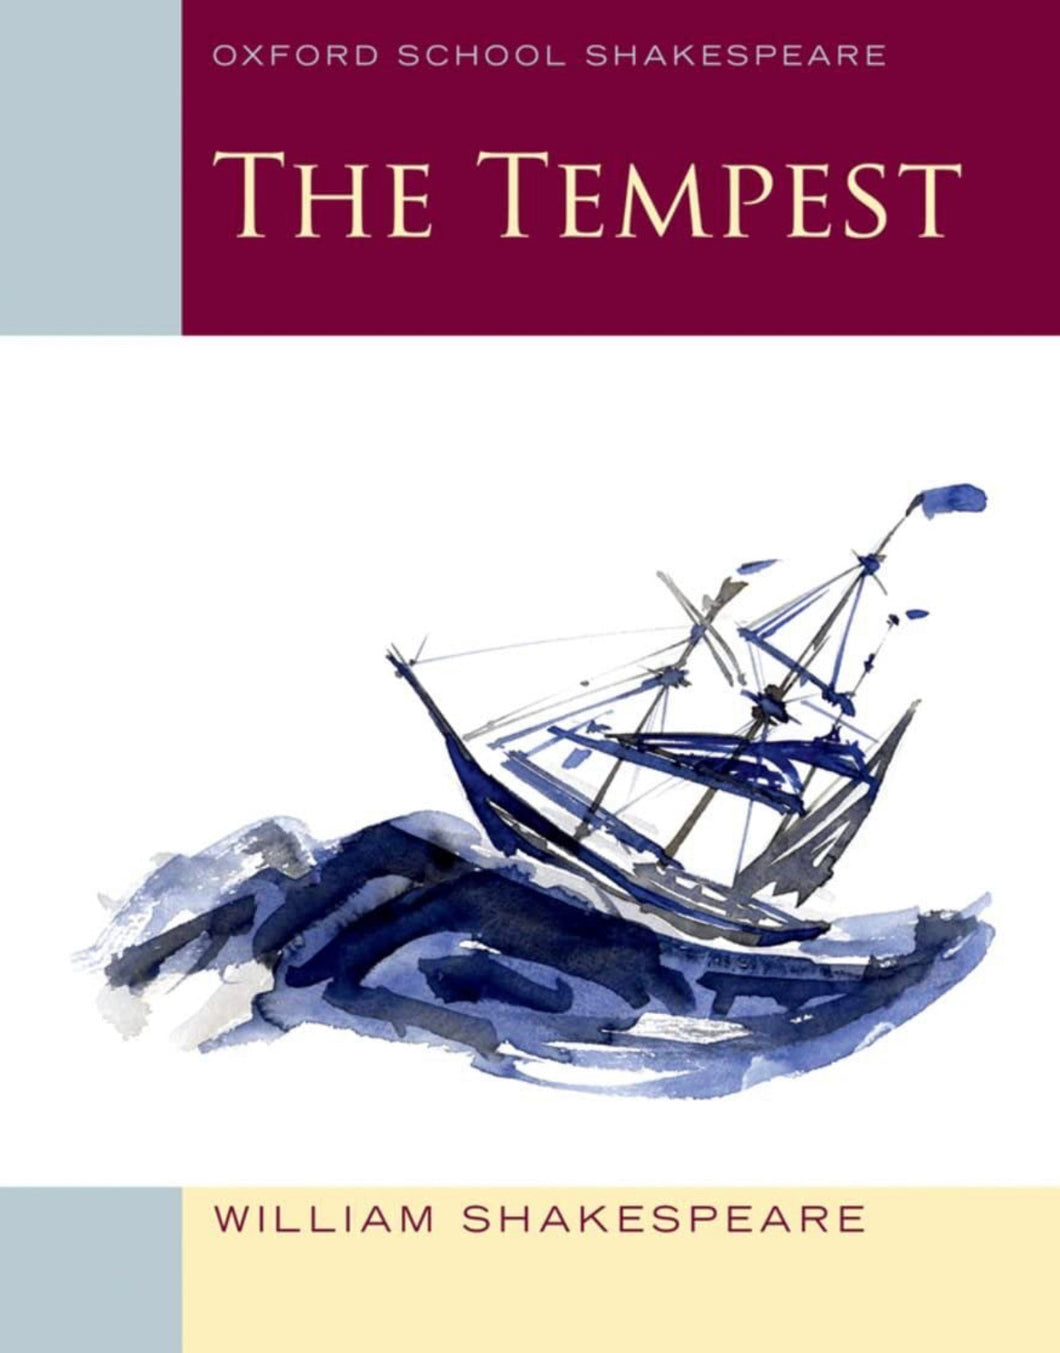 Oxford Reading Shakespeare: The Tempest